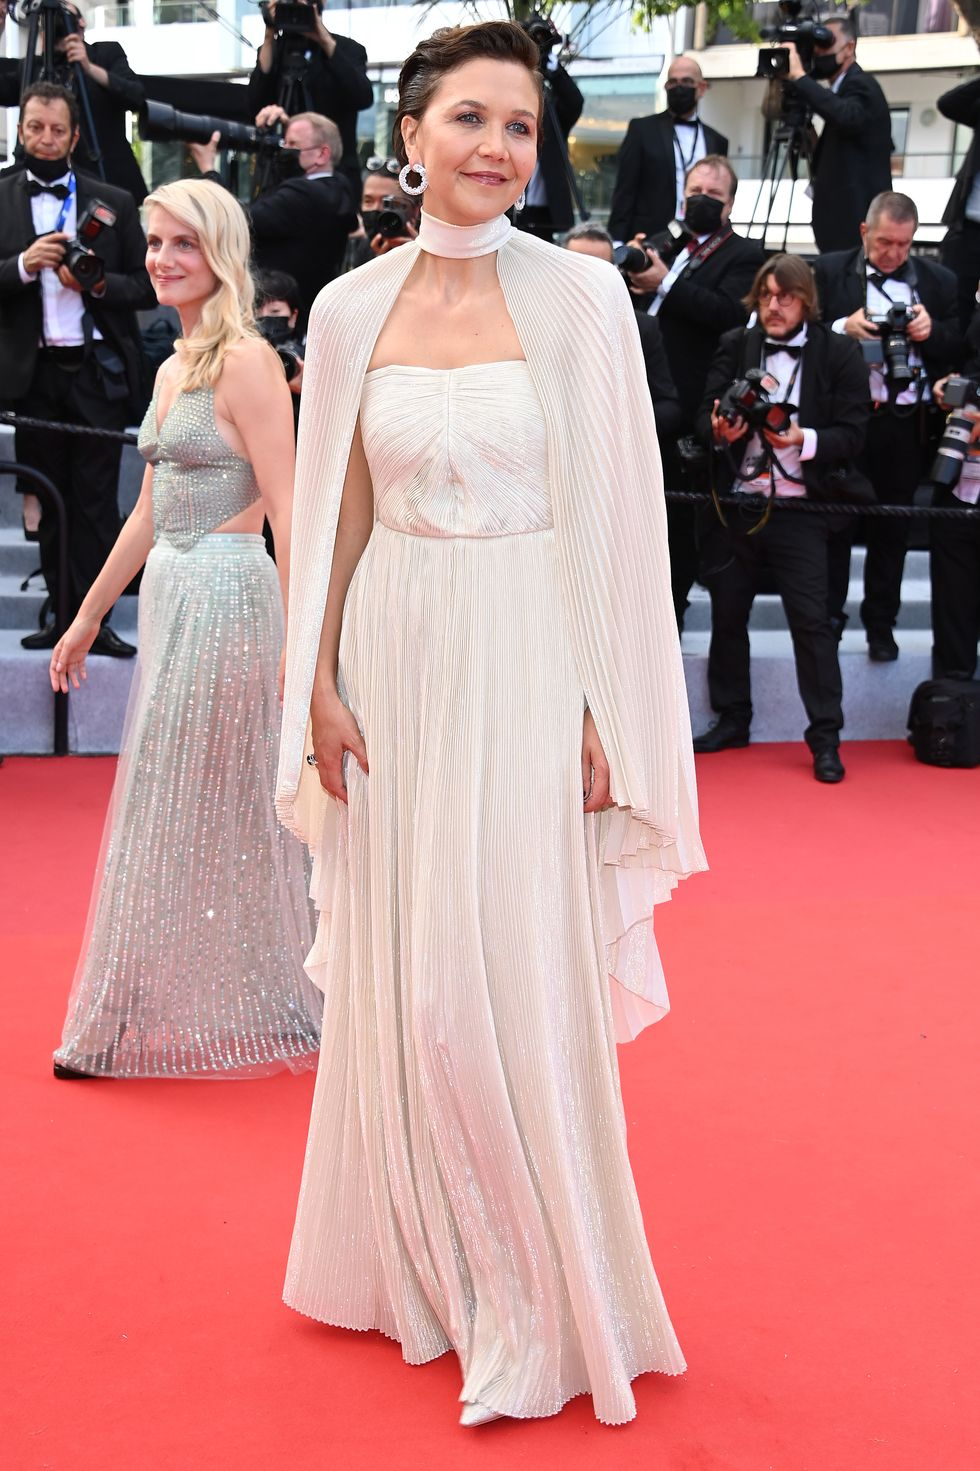 Maggie Gyllenhaal This year's jury member, Maggie Gyllenhaal, wore a chic white Celine dress with a long cape and Chopard jewels.